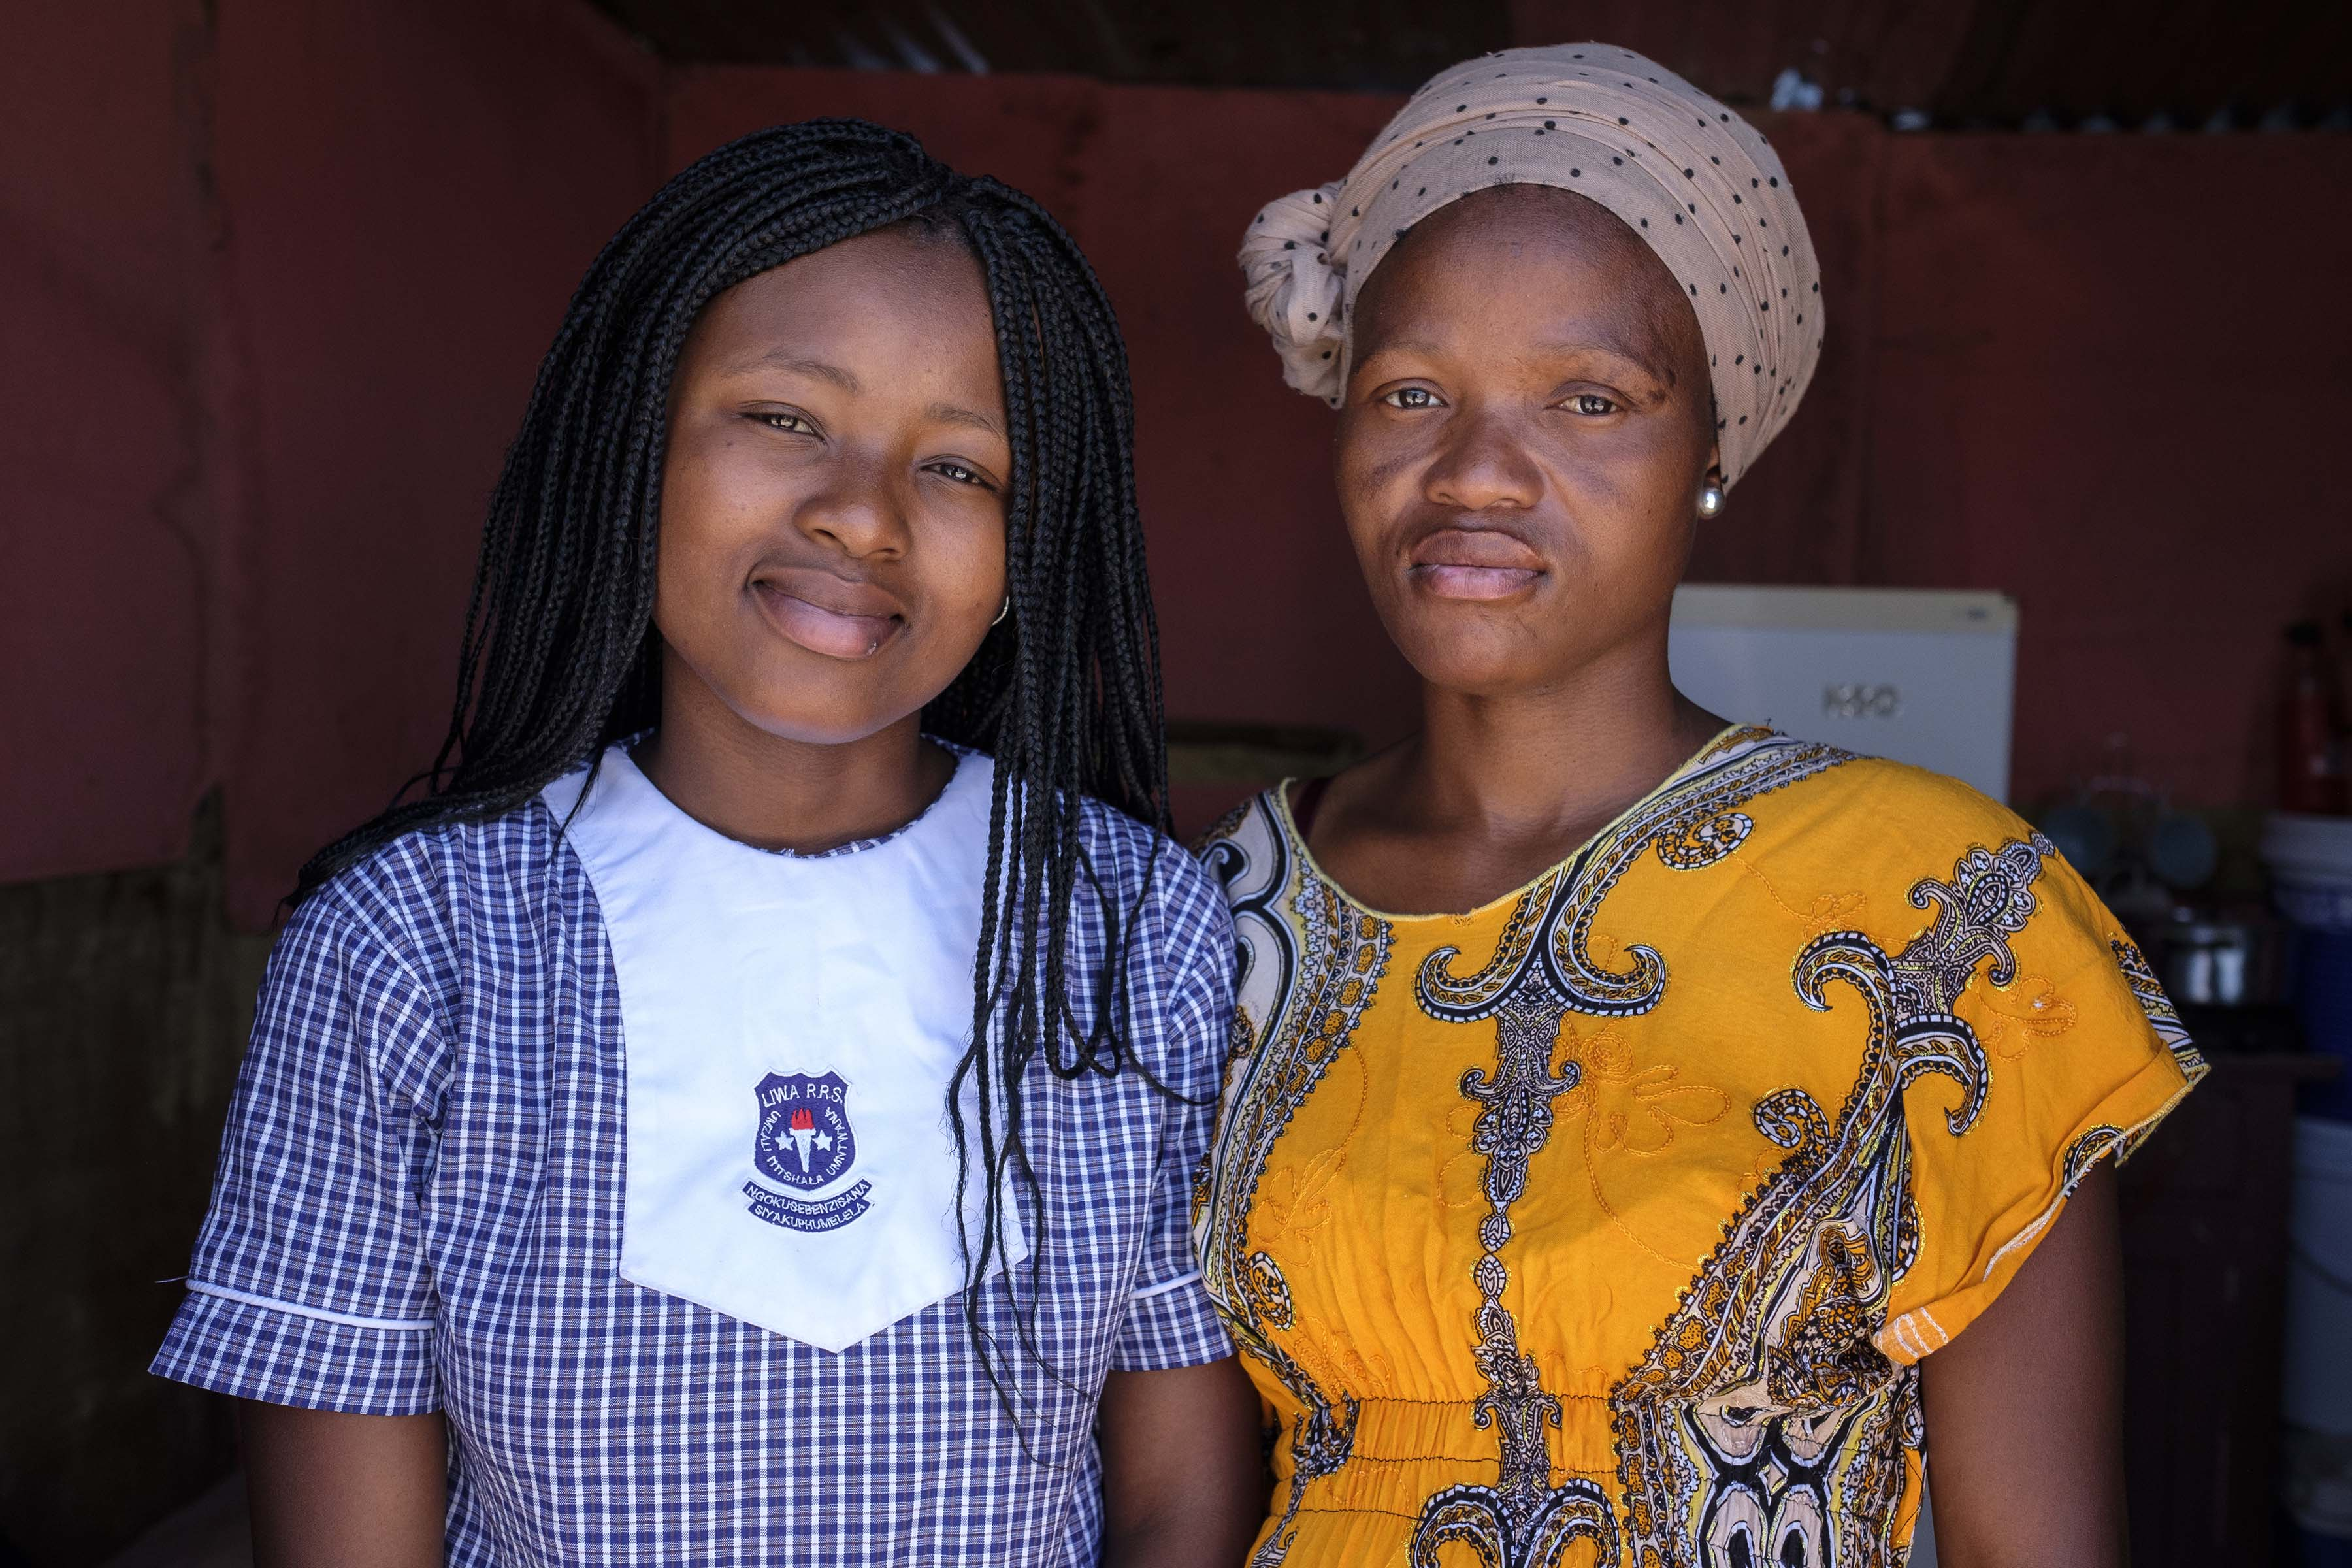 25 November 2019: Unamandla Nontswabo, who is putting her community into the international spotlight with her spelling skills, and her mother Nomsa Mqaleni.